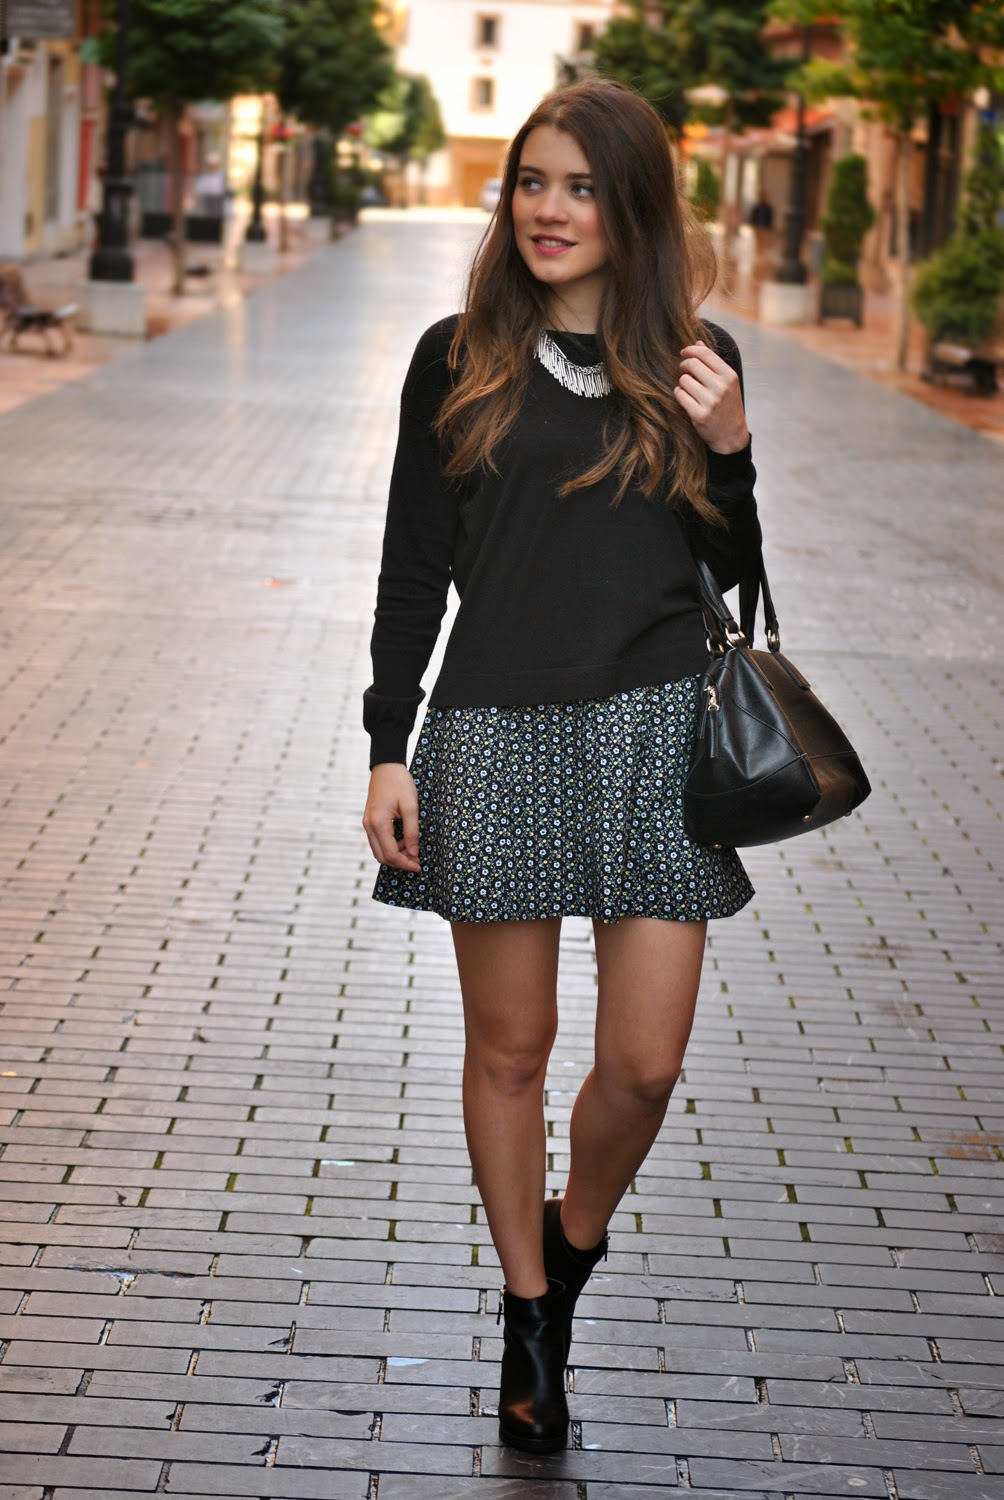 Outfit Of The Day: Winter Skirt